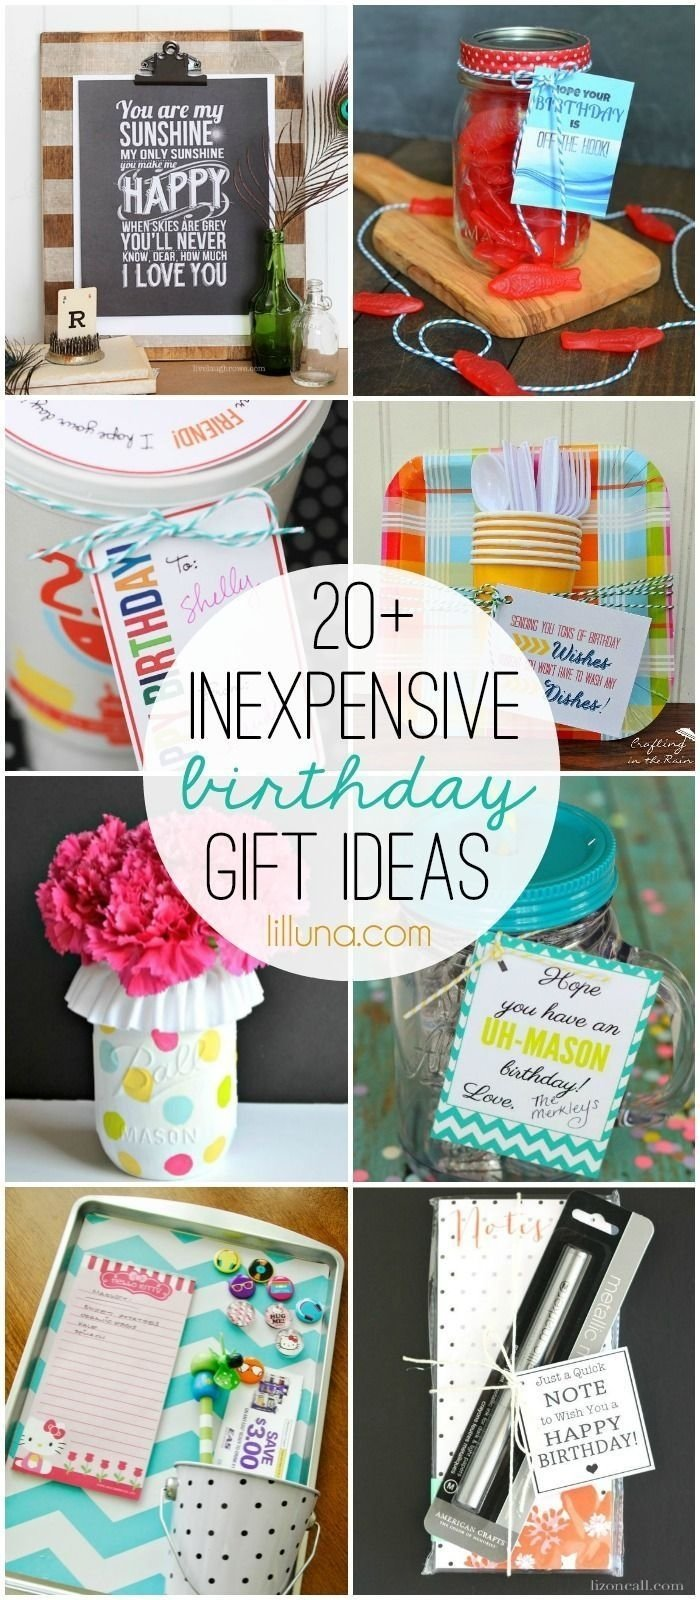 20+ inexpensive birthday gift ideas - must check out all these good